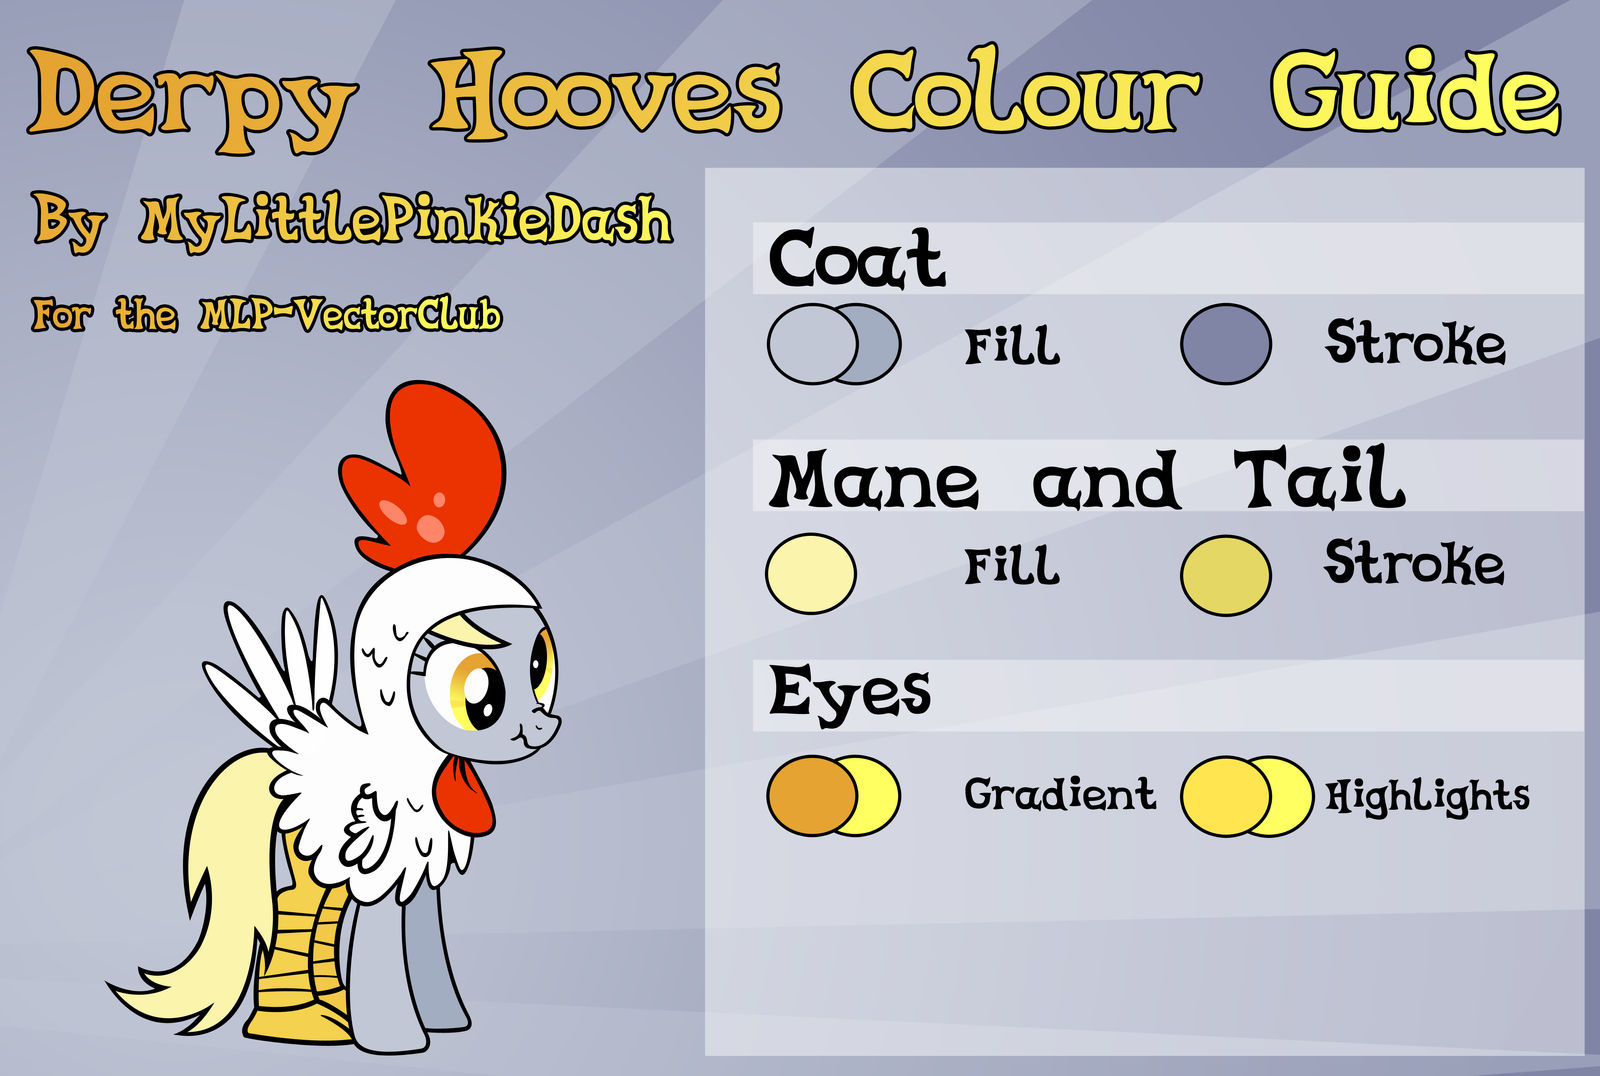 Derpy Hooves Colour Guide by Atmospark